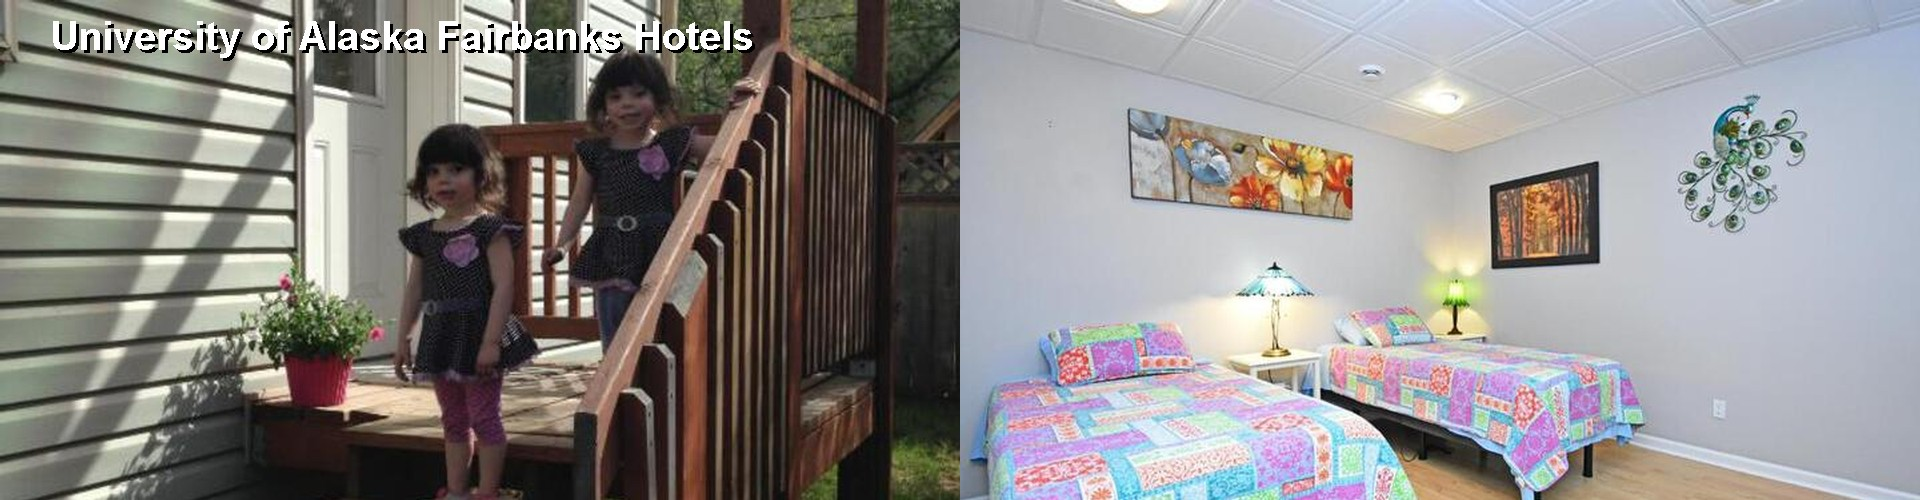 5 Best Hotels Near University Of Alaska Fairbanks